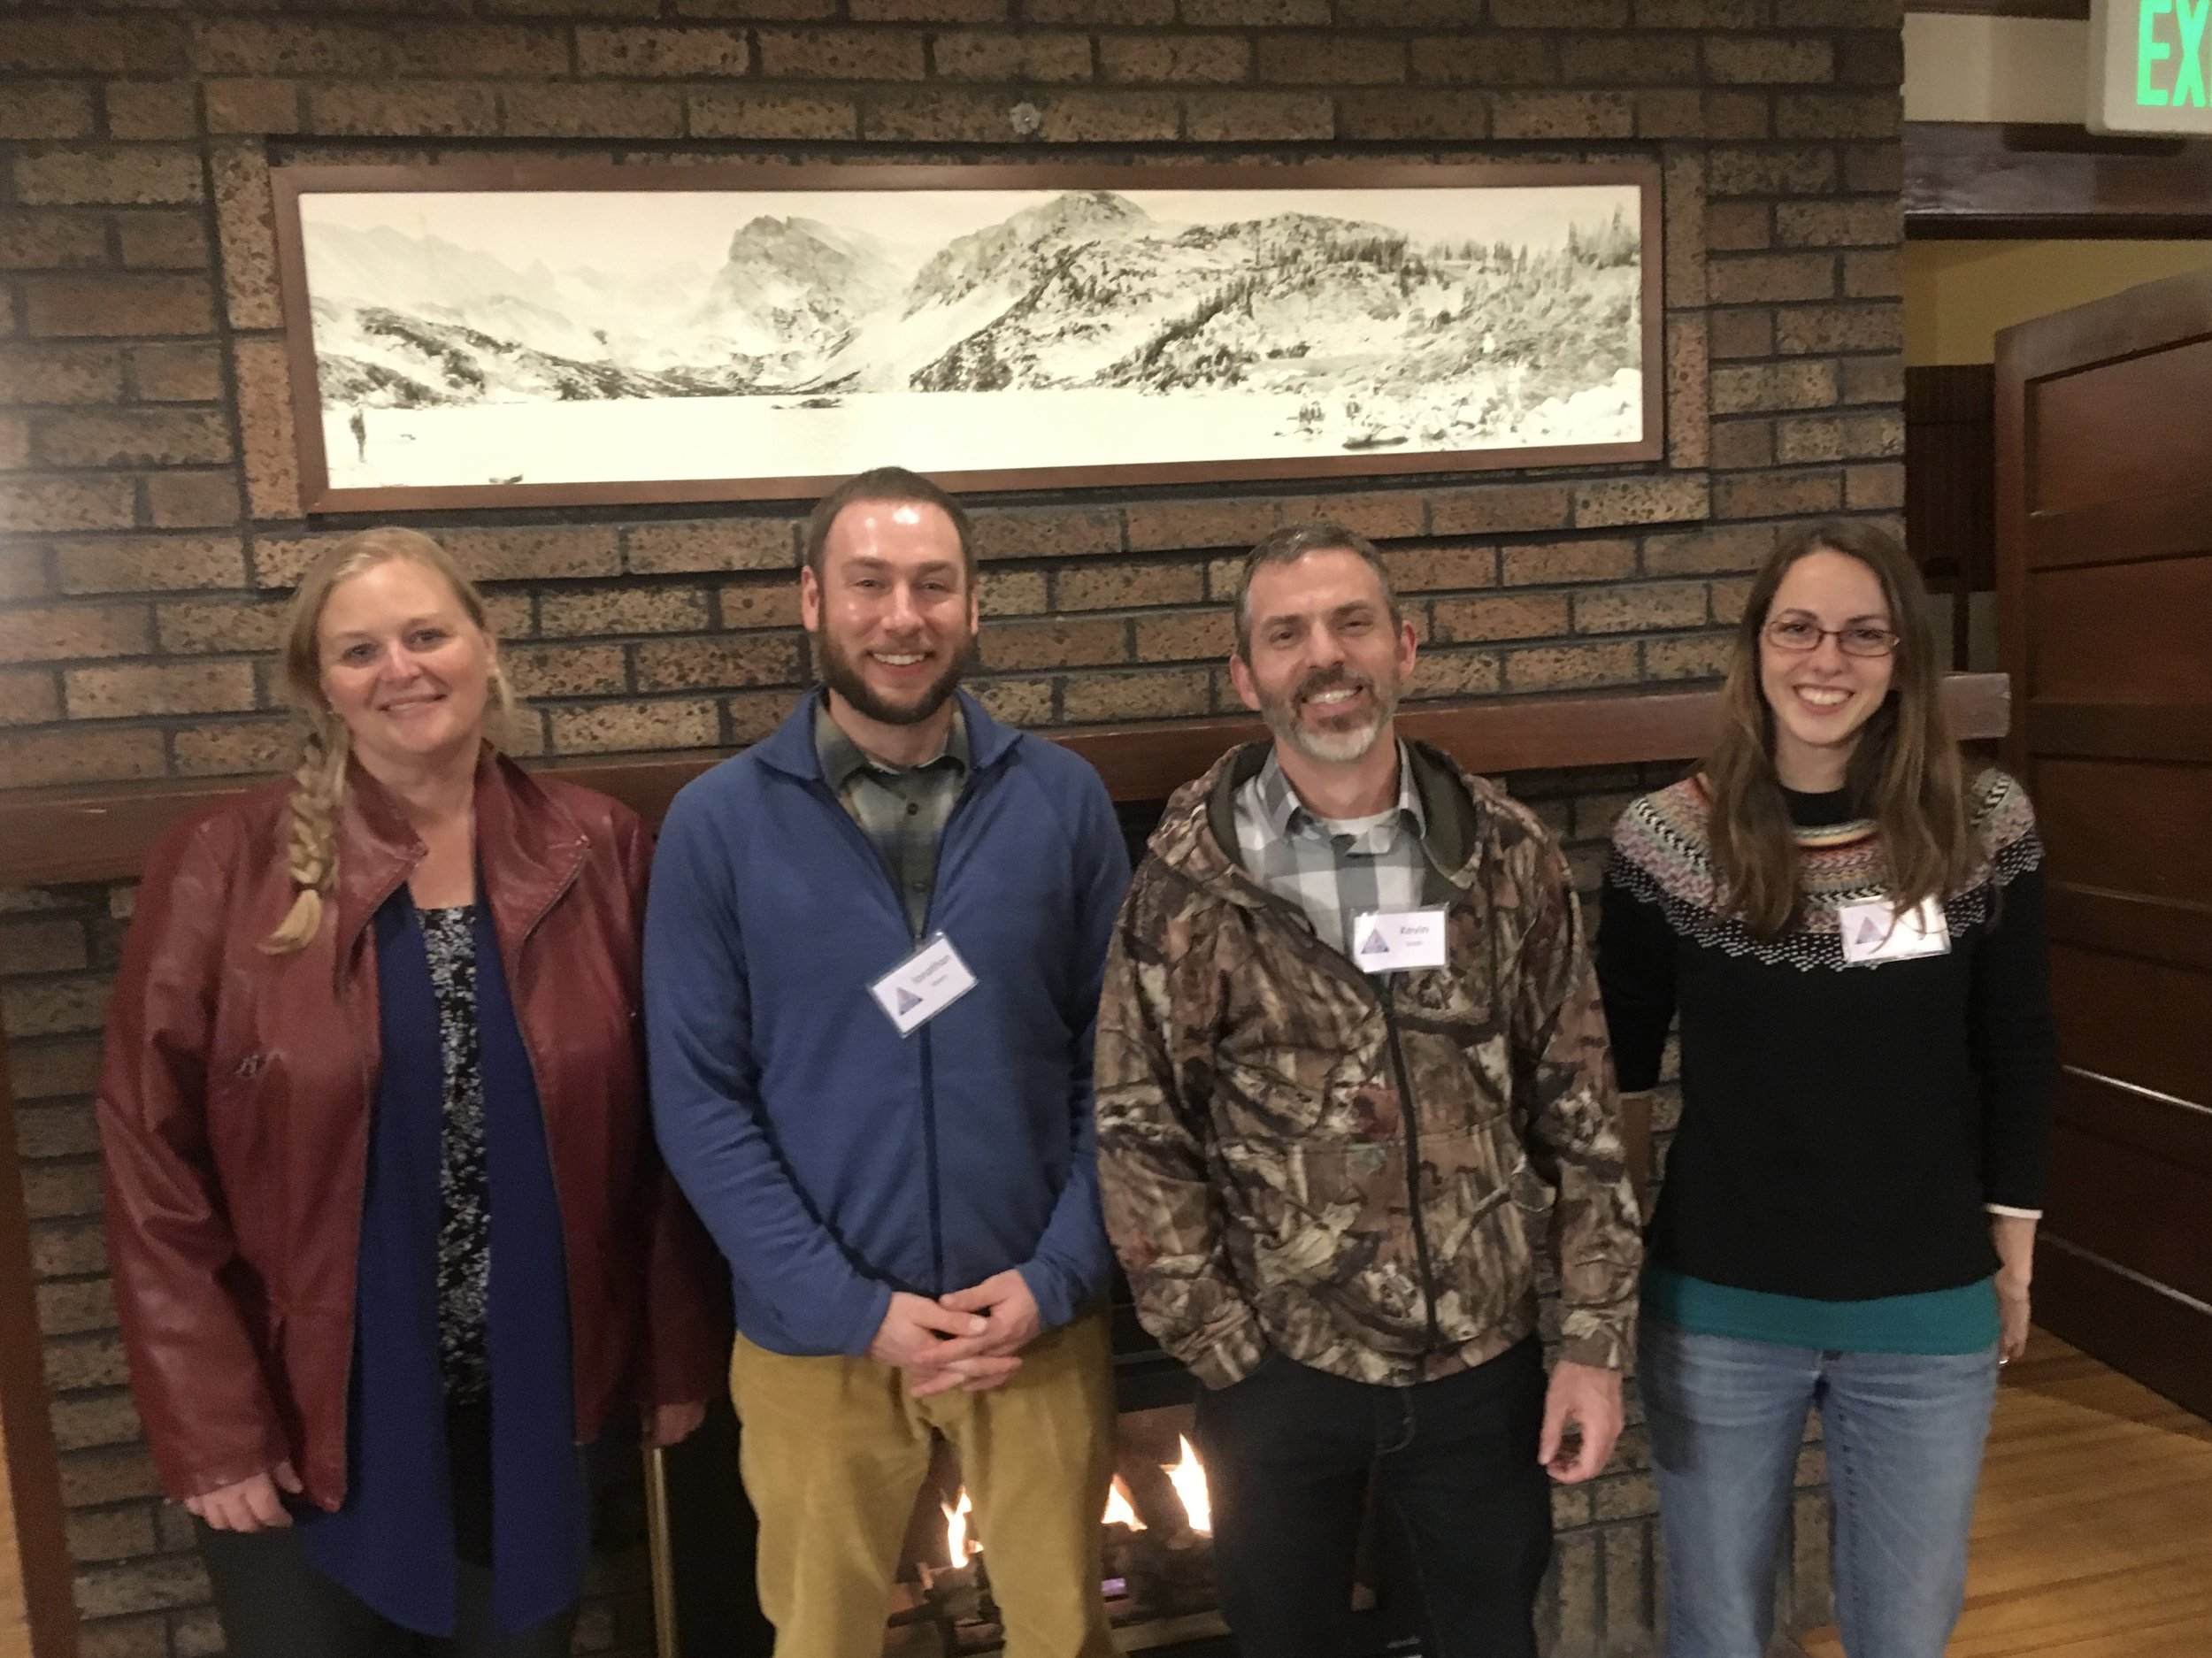 From left: Drs. Rae Crandall (former WashU postdoc, currently faculty at University of Florida), Jonathan Myers (current faculty at WashU), Kevin Smith (former director of Tyson, currently faculty at Davidson College), and Solny Adalsteinsson (current Tyson staff scientist)